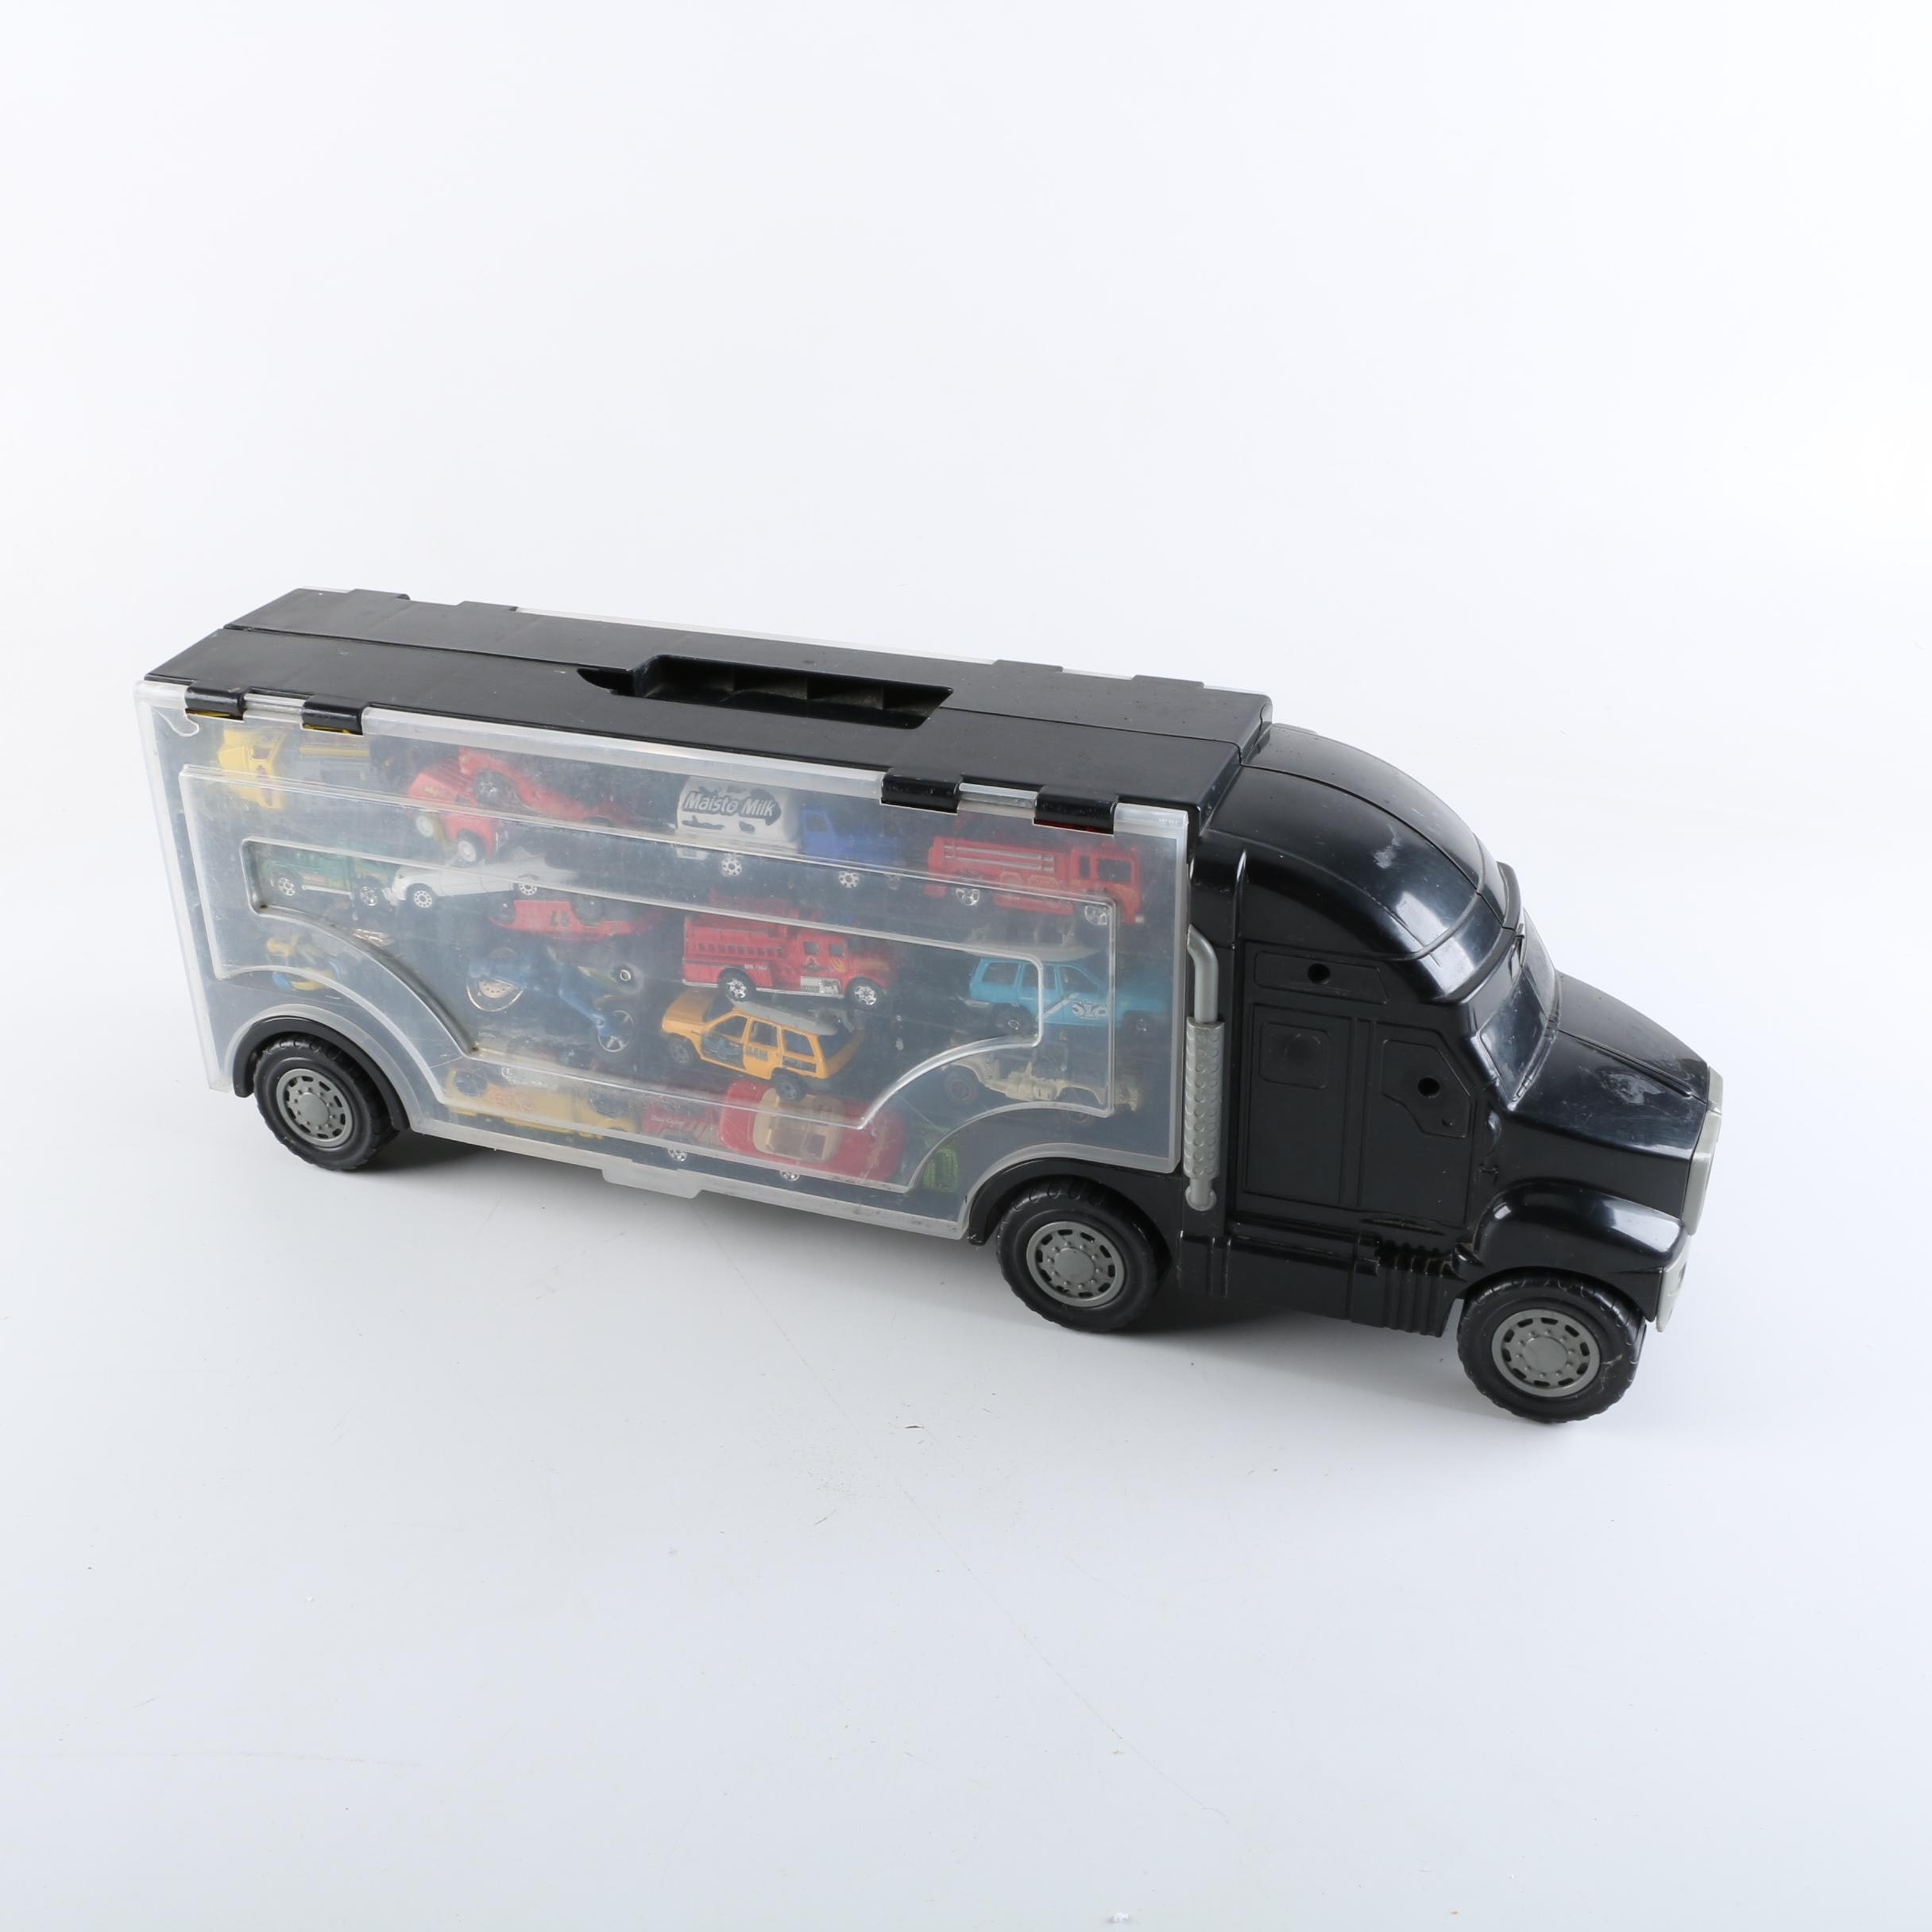 Semi Truck Car Transporter Storage Case with Matchbox